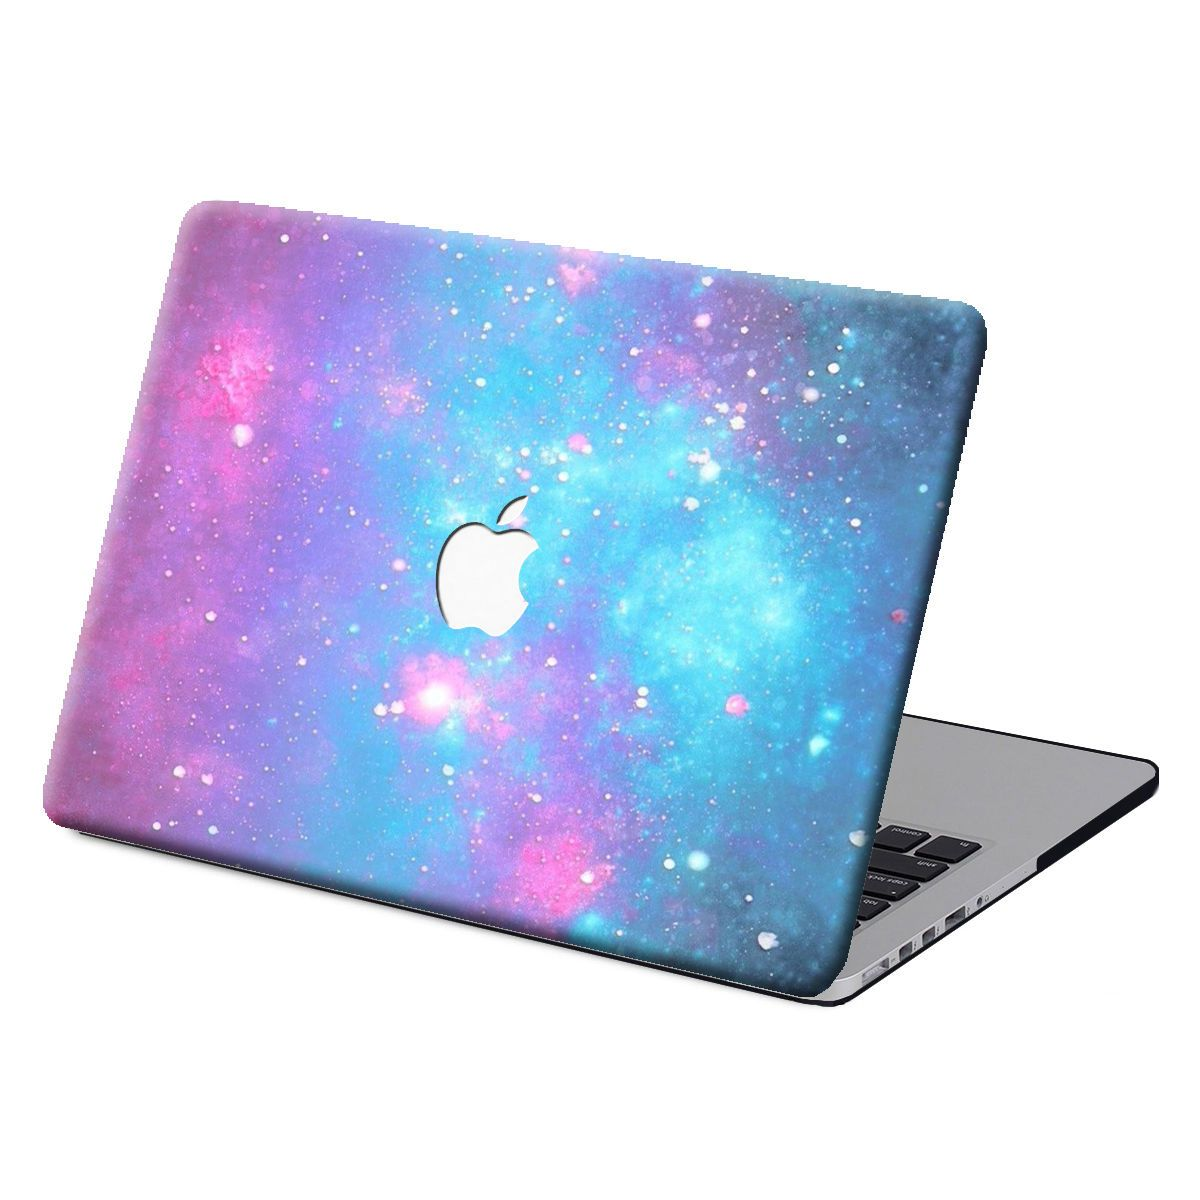 df83fcf6dbb3d Starry Galaxy Painted Laptop Hard Case KB Cover for Macbook Pro Air 11 12  13 15 in Computers Tablets Networking, Laptop Desktop Accessories, Laptop  Cases, ...